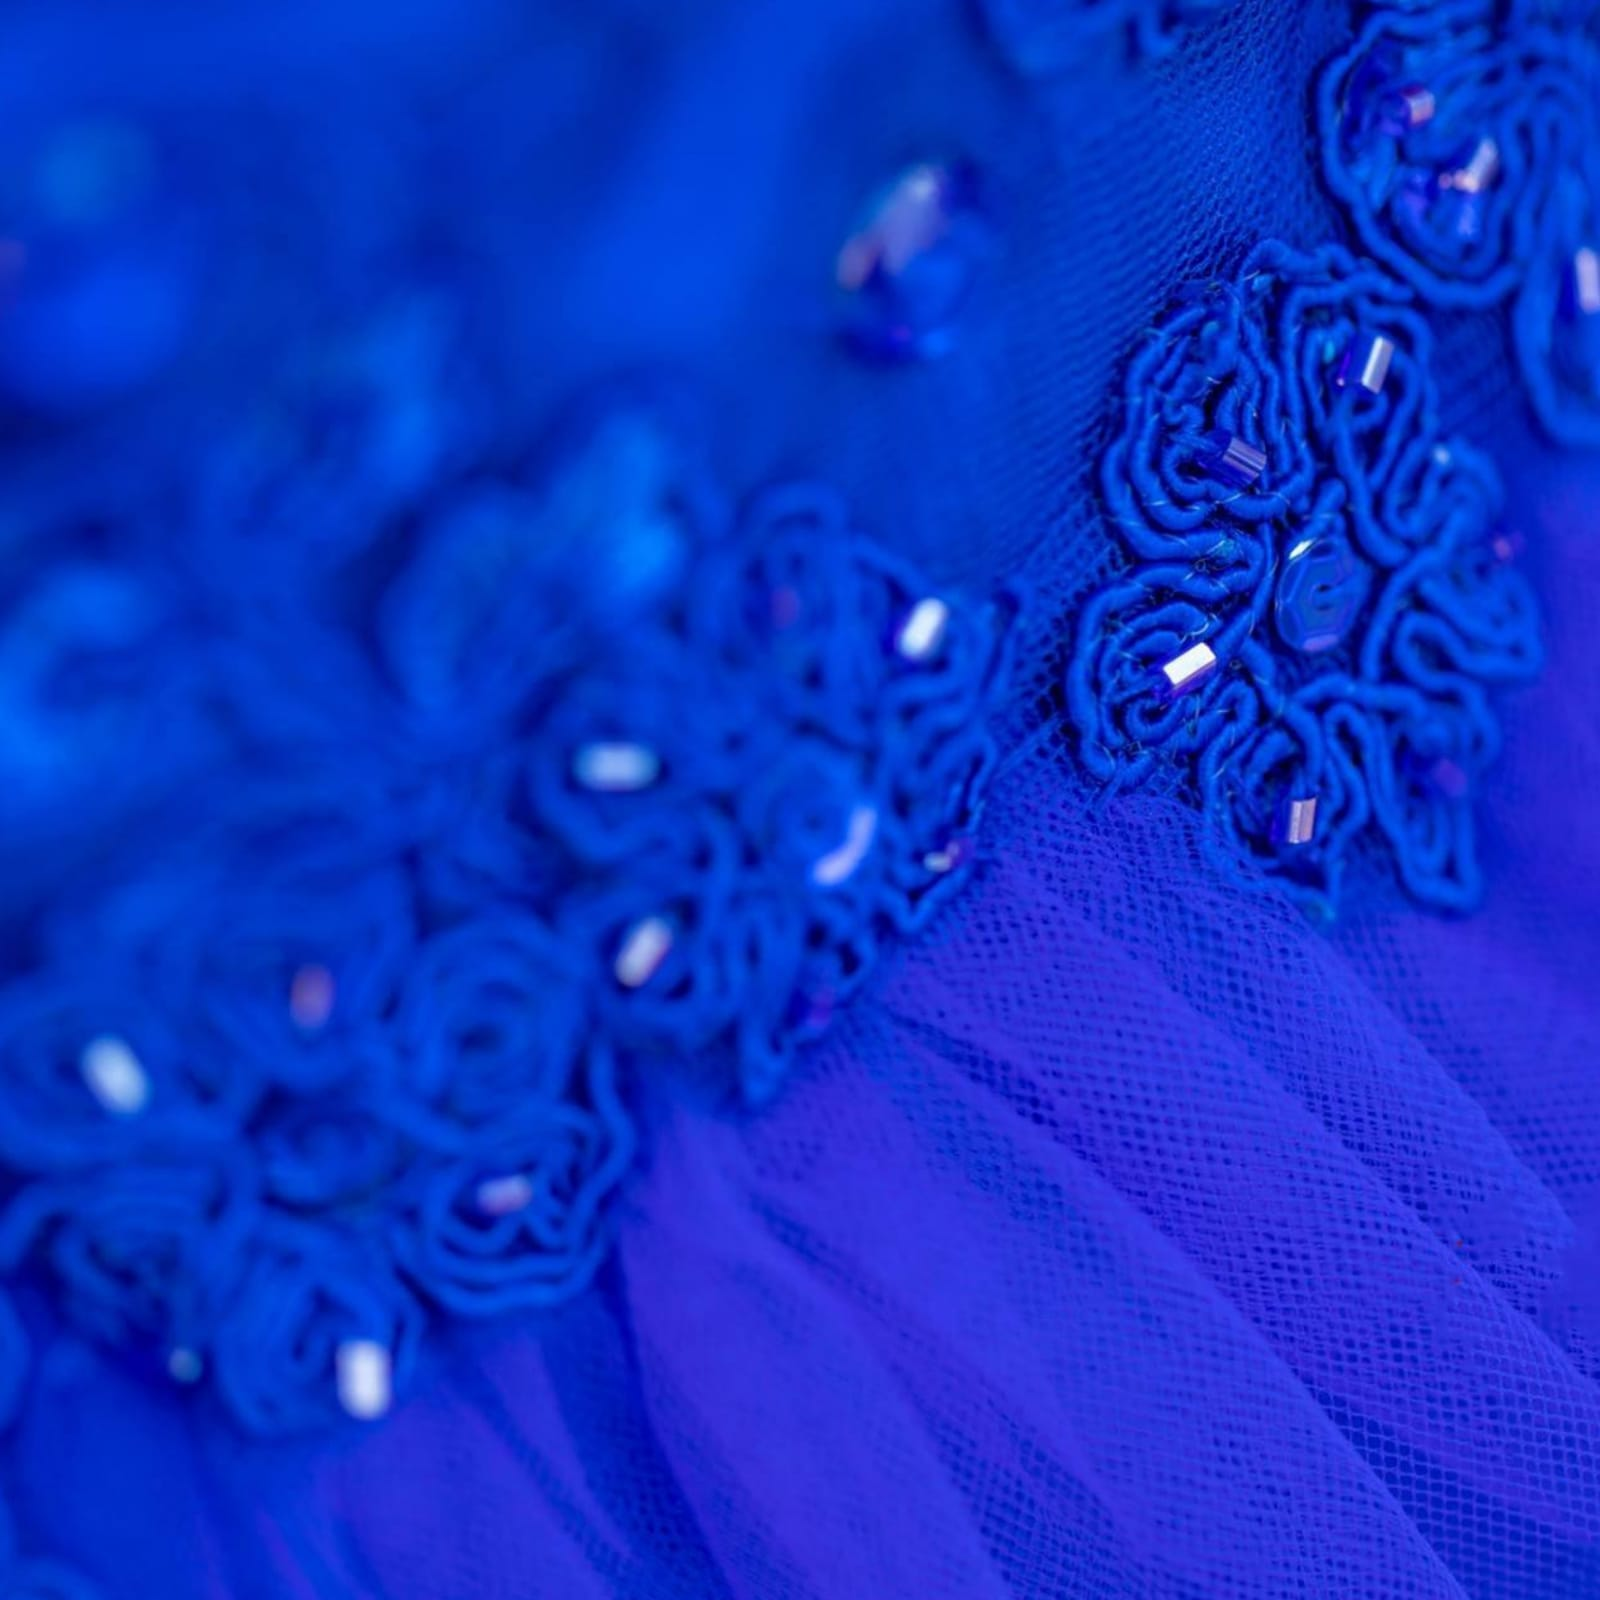 Royal blue boobtube tulle prom dress 8 royal blue boobtube tulle prom dress. Bodice with a sweetheart neckline and detailed with beaded lace falling onto the tulle skirt.